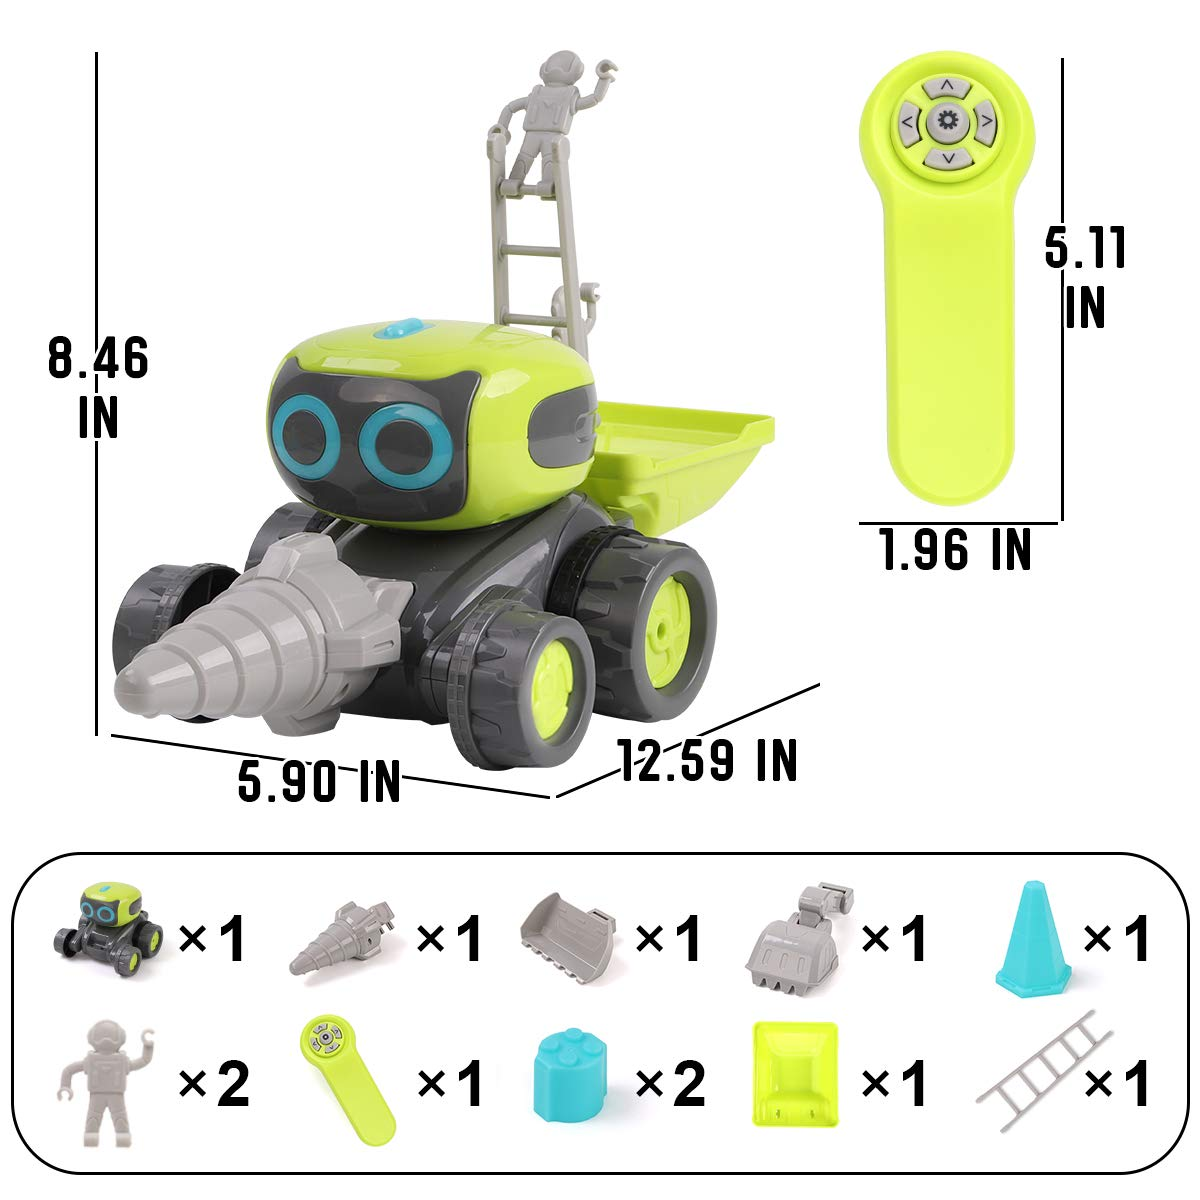 GILOBABY Remote Control Construction Team Engineering Vehicle, 3 in 1 RC Robot Car, Dance Moves, Plays Music, Light-up Eyes, Gift for Kids Age 3+ by GILOBABY (Image #7)